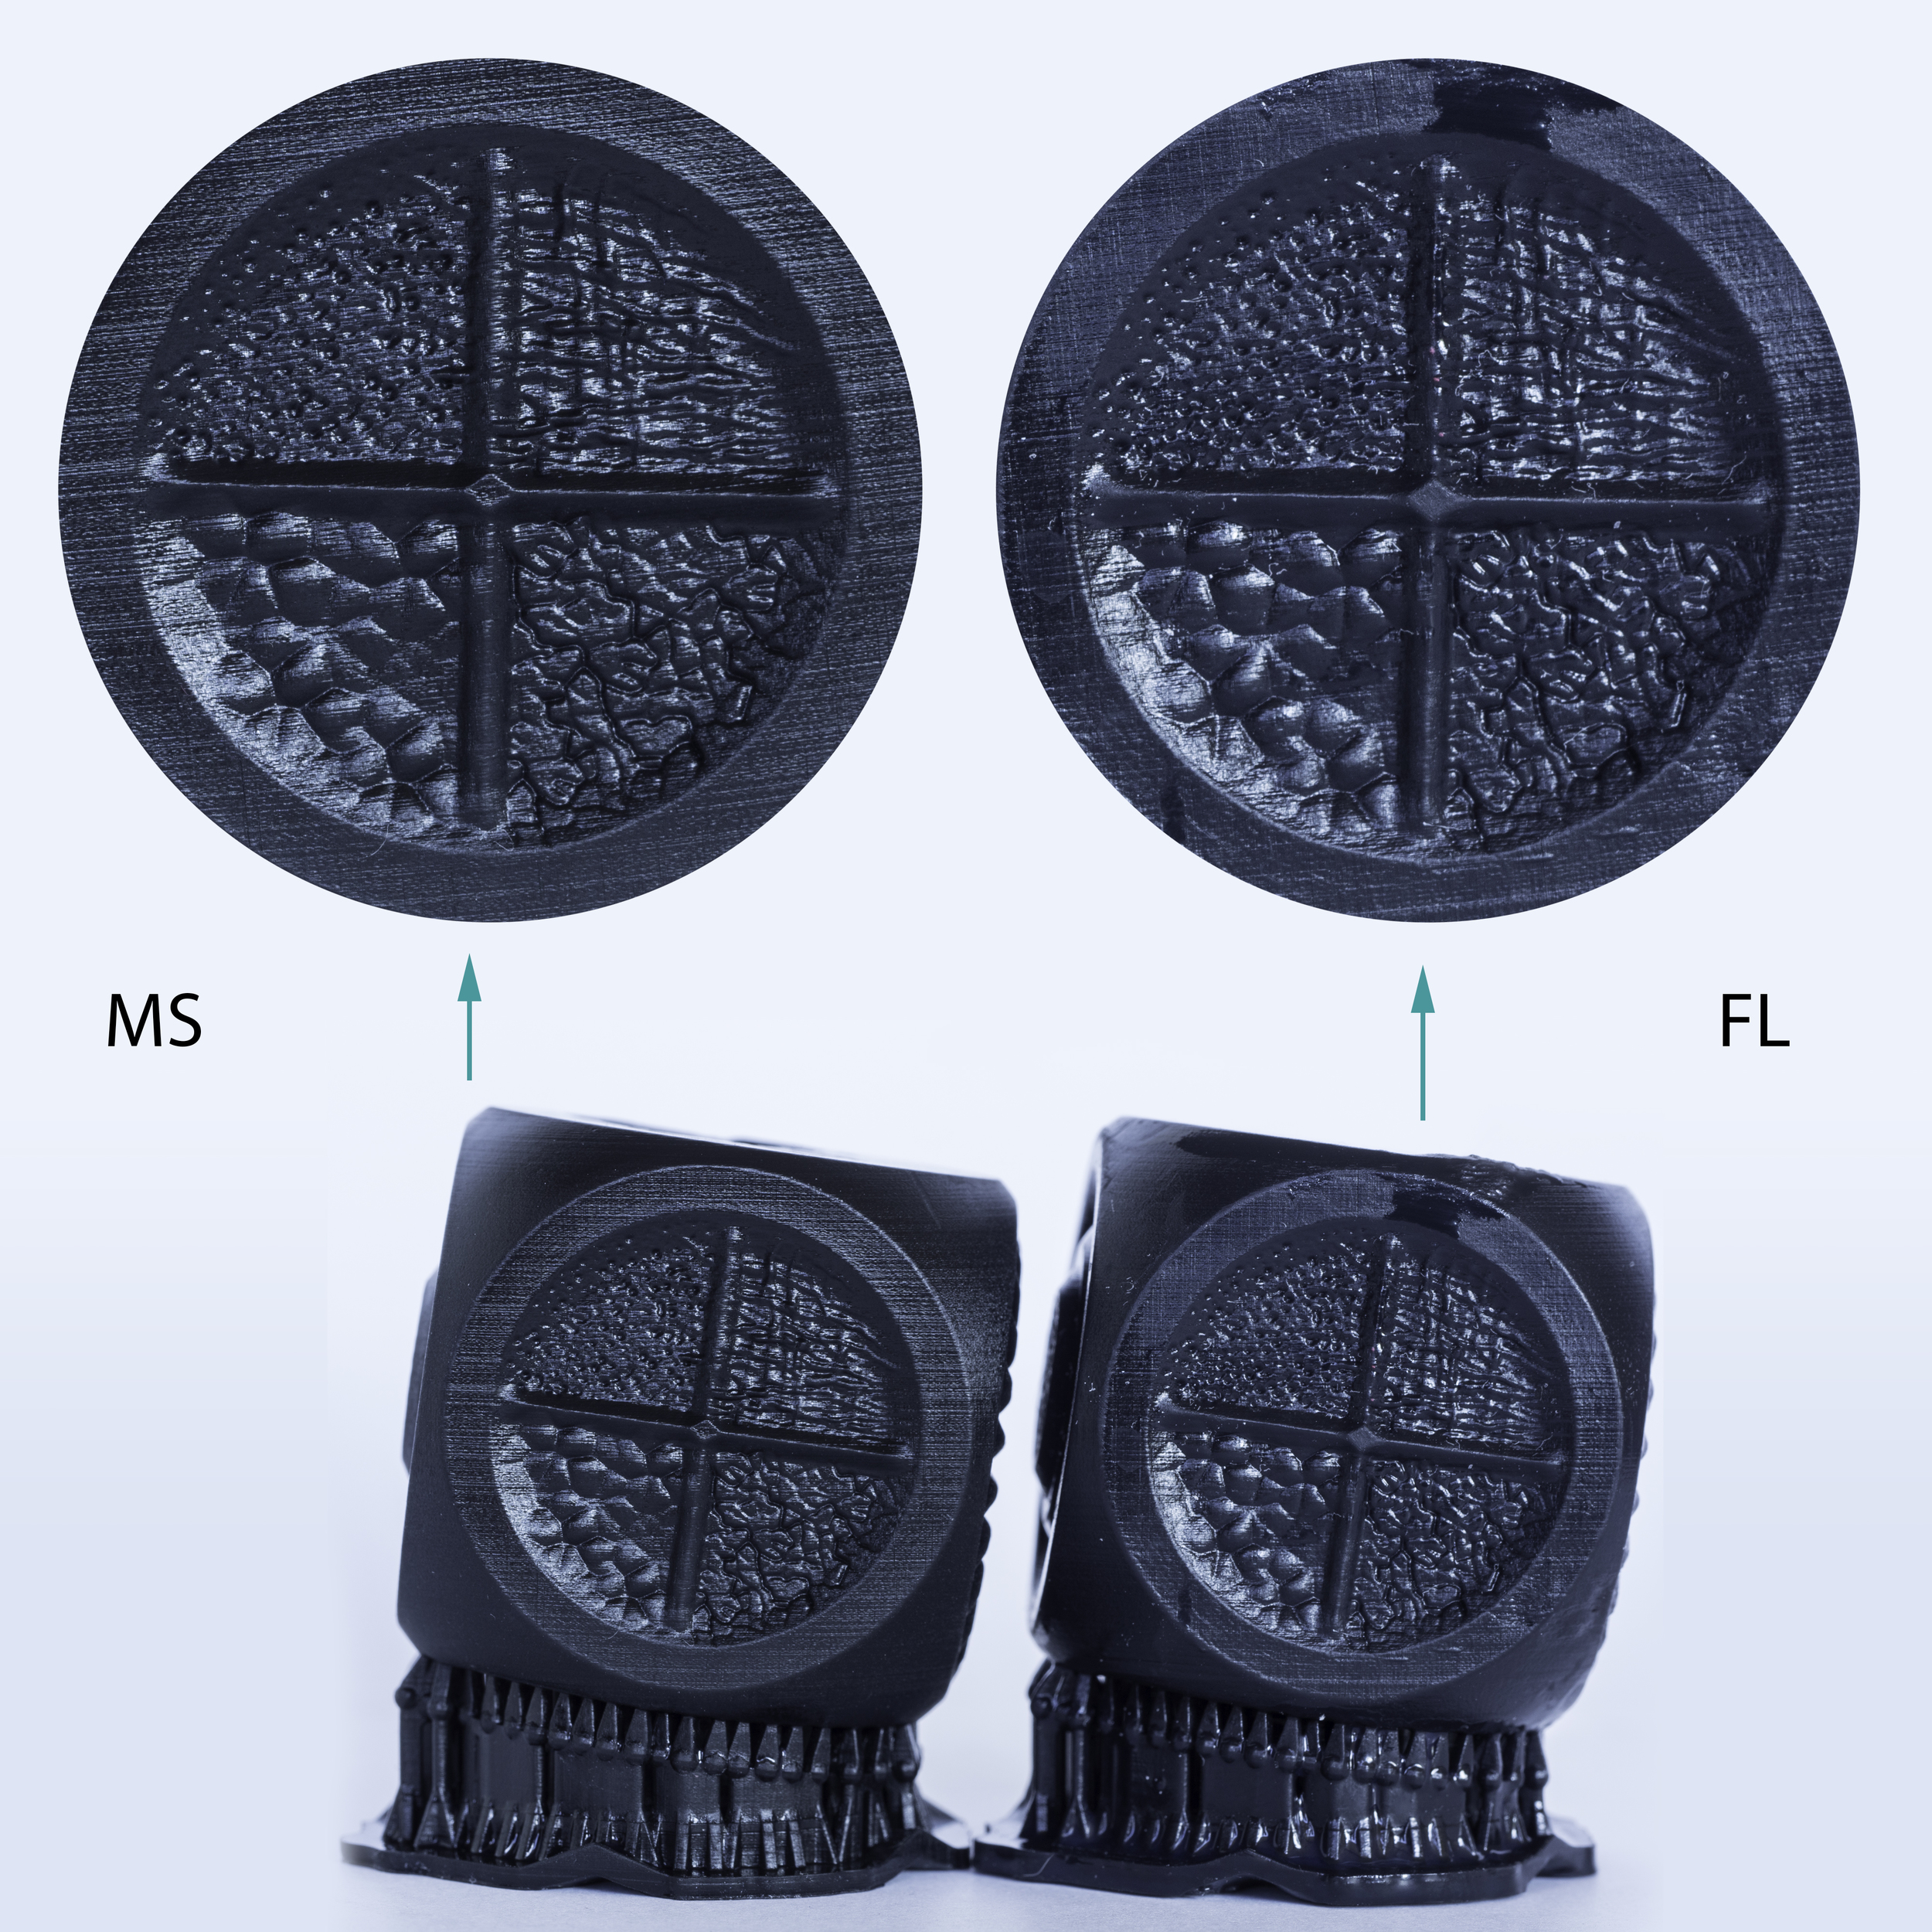 Surface details of the M3D Texture Cube as printed using the MS and FL black resin.